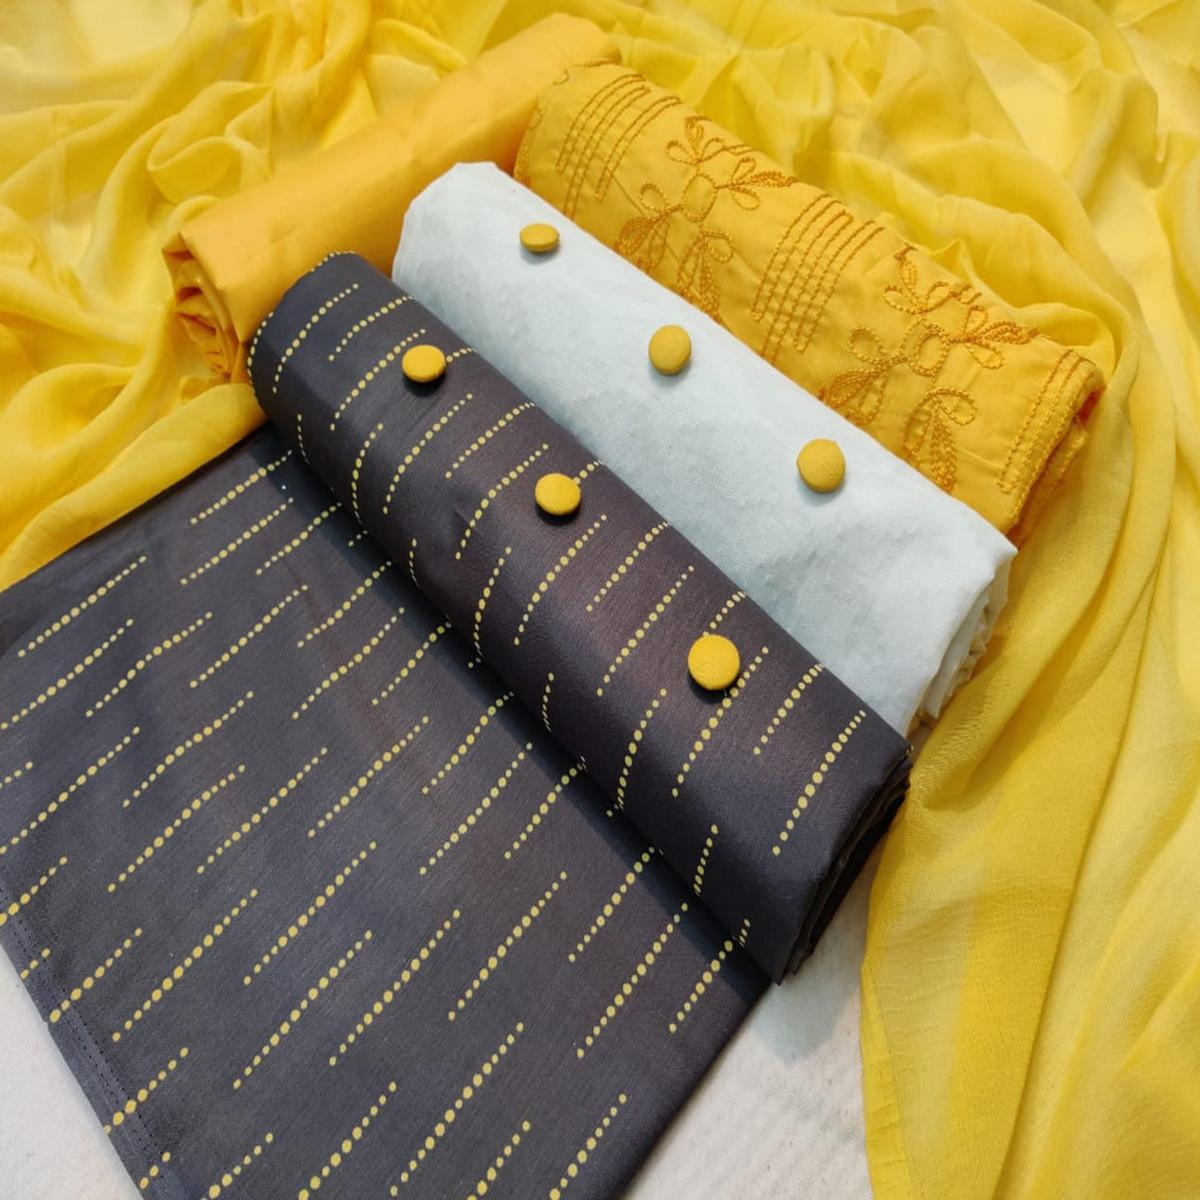 Unique Yellow - Black - White Colored Partywear Embroidered Tripel Top Cotton Dress Material